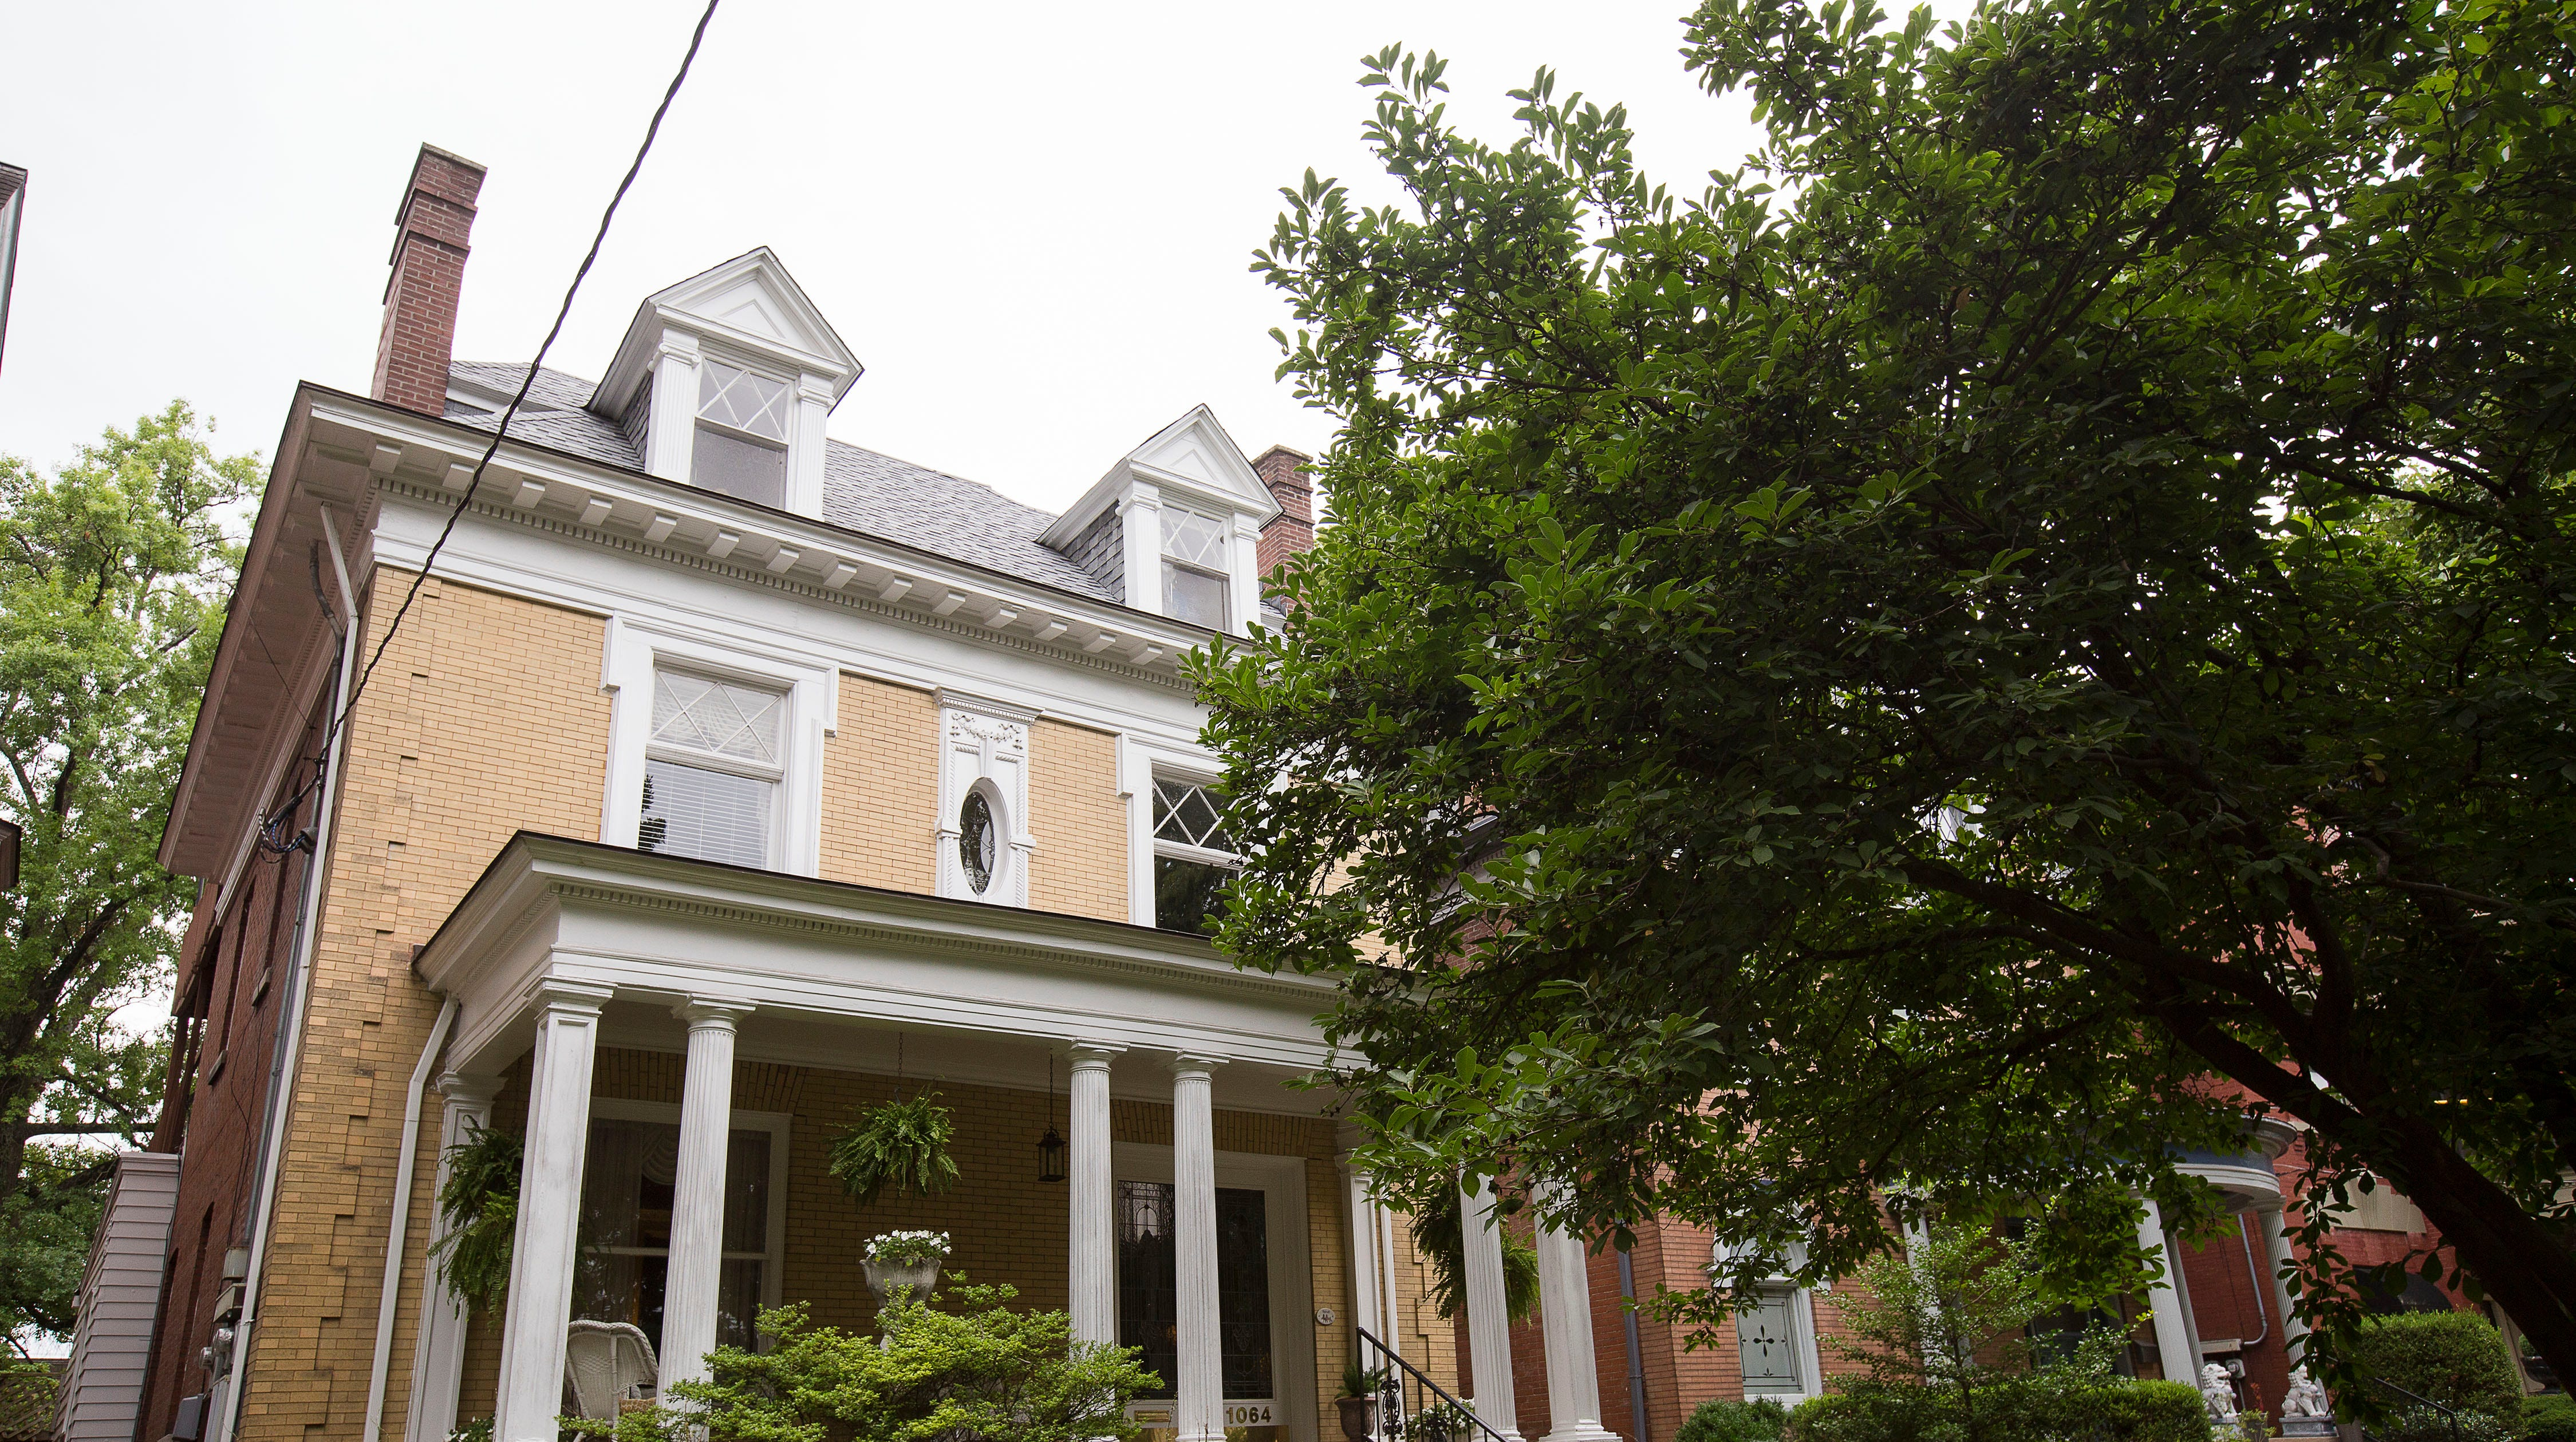 1900s Cherokee Triangle Victorian boasts modern touches, antique charm